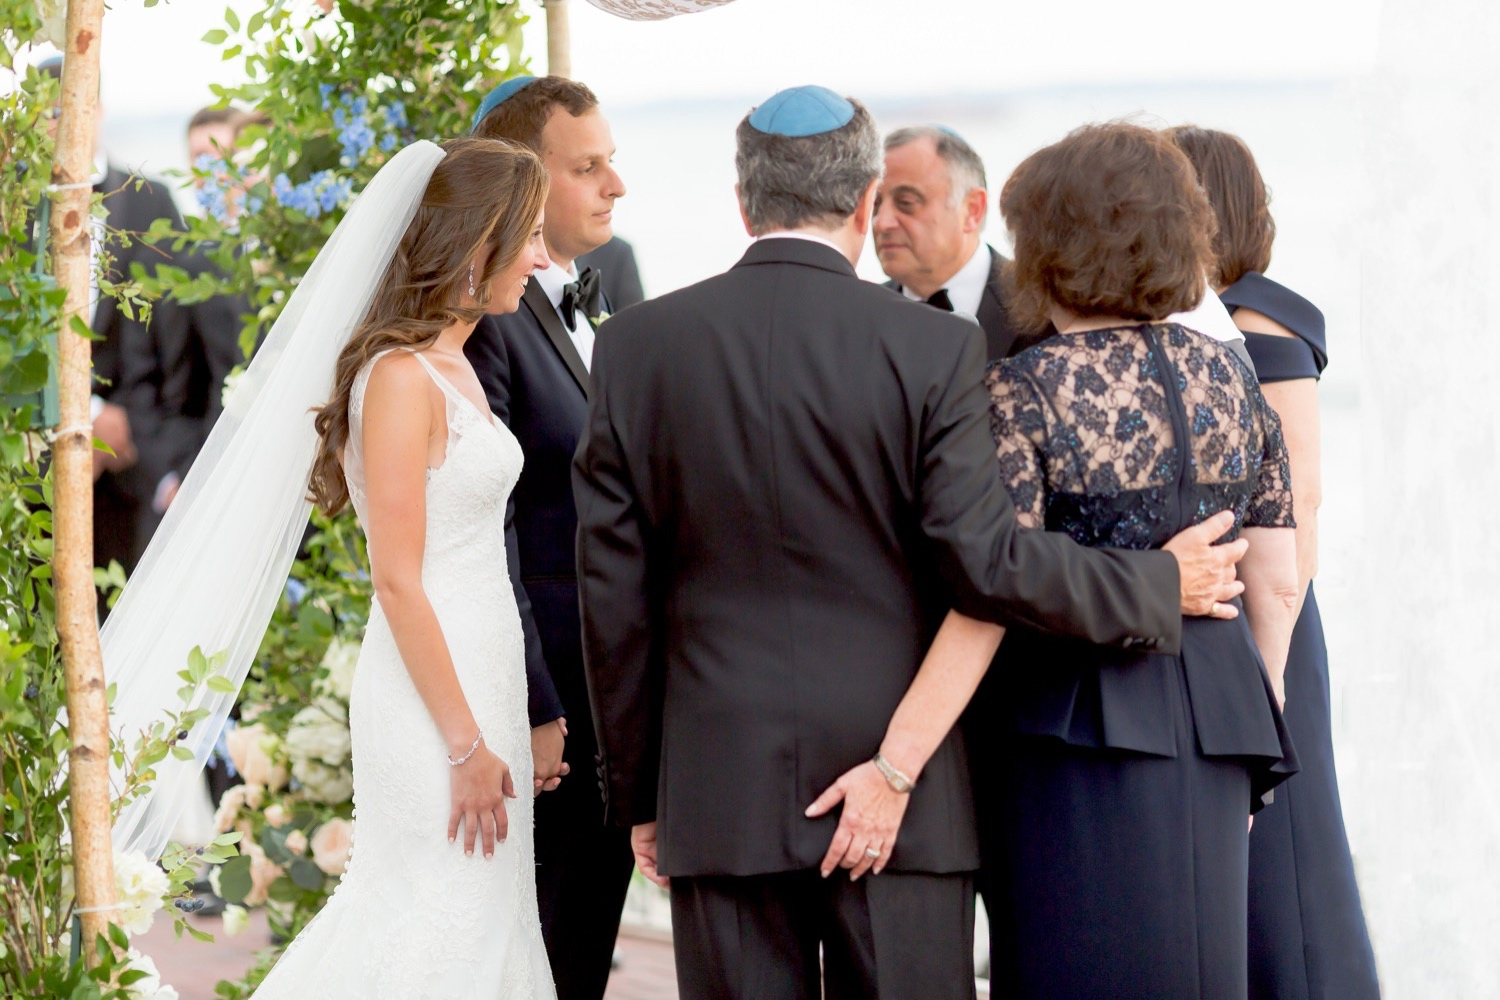 A bride, a groom and their parents gathered together around chuppah during a wedding ceremony at Liberty Warehouse, Brooklyn New York.